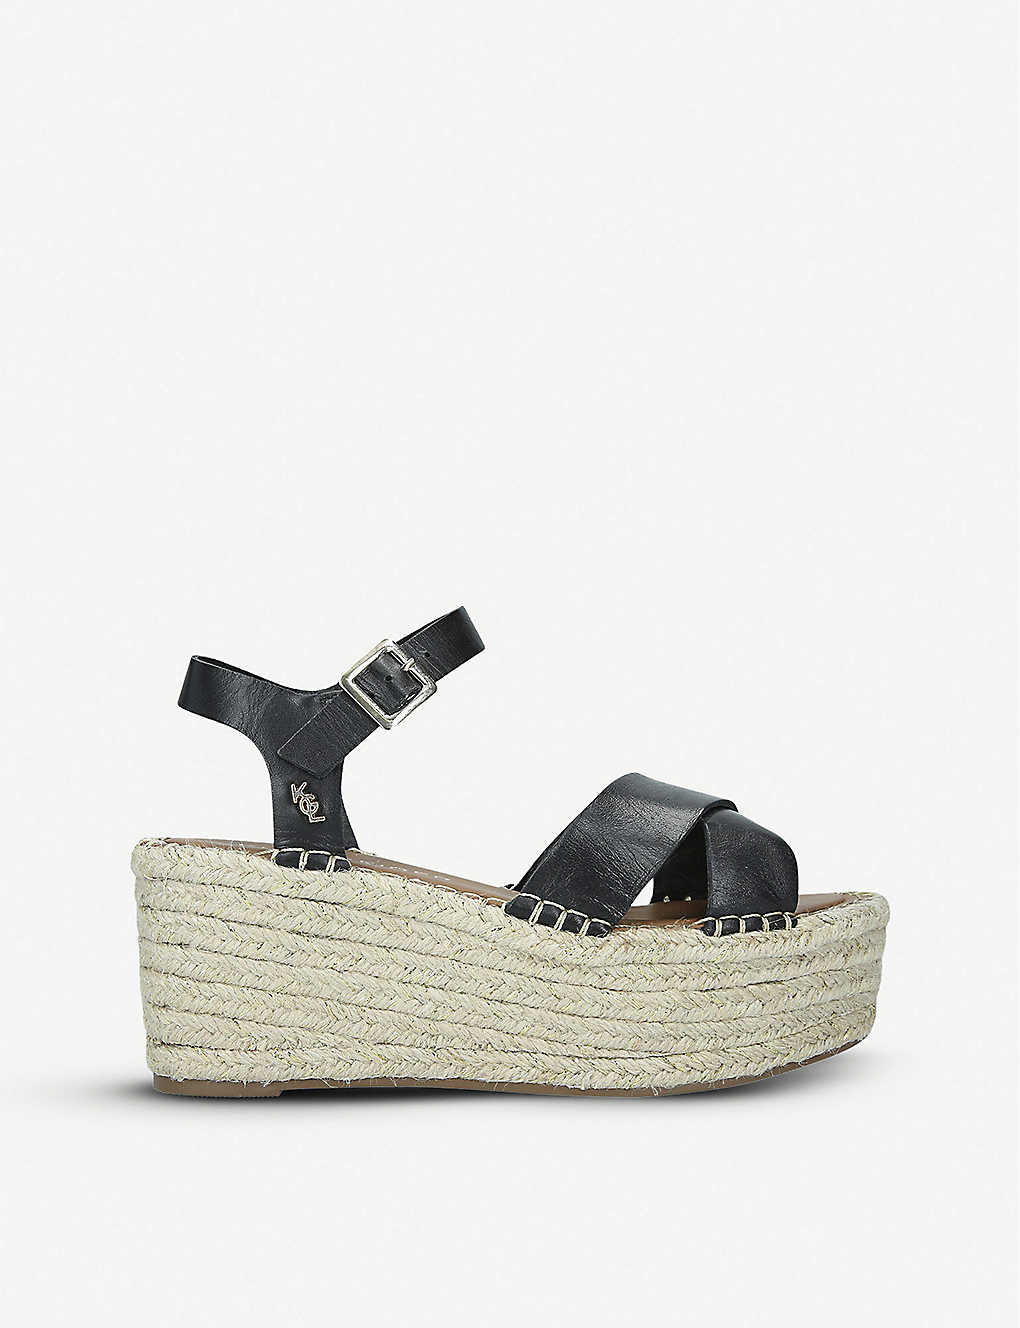 446e516d168 Arlo leather platform espadrilles